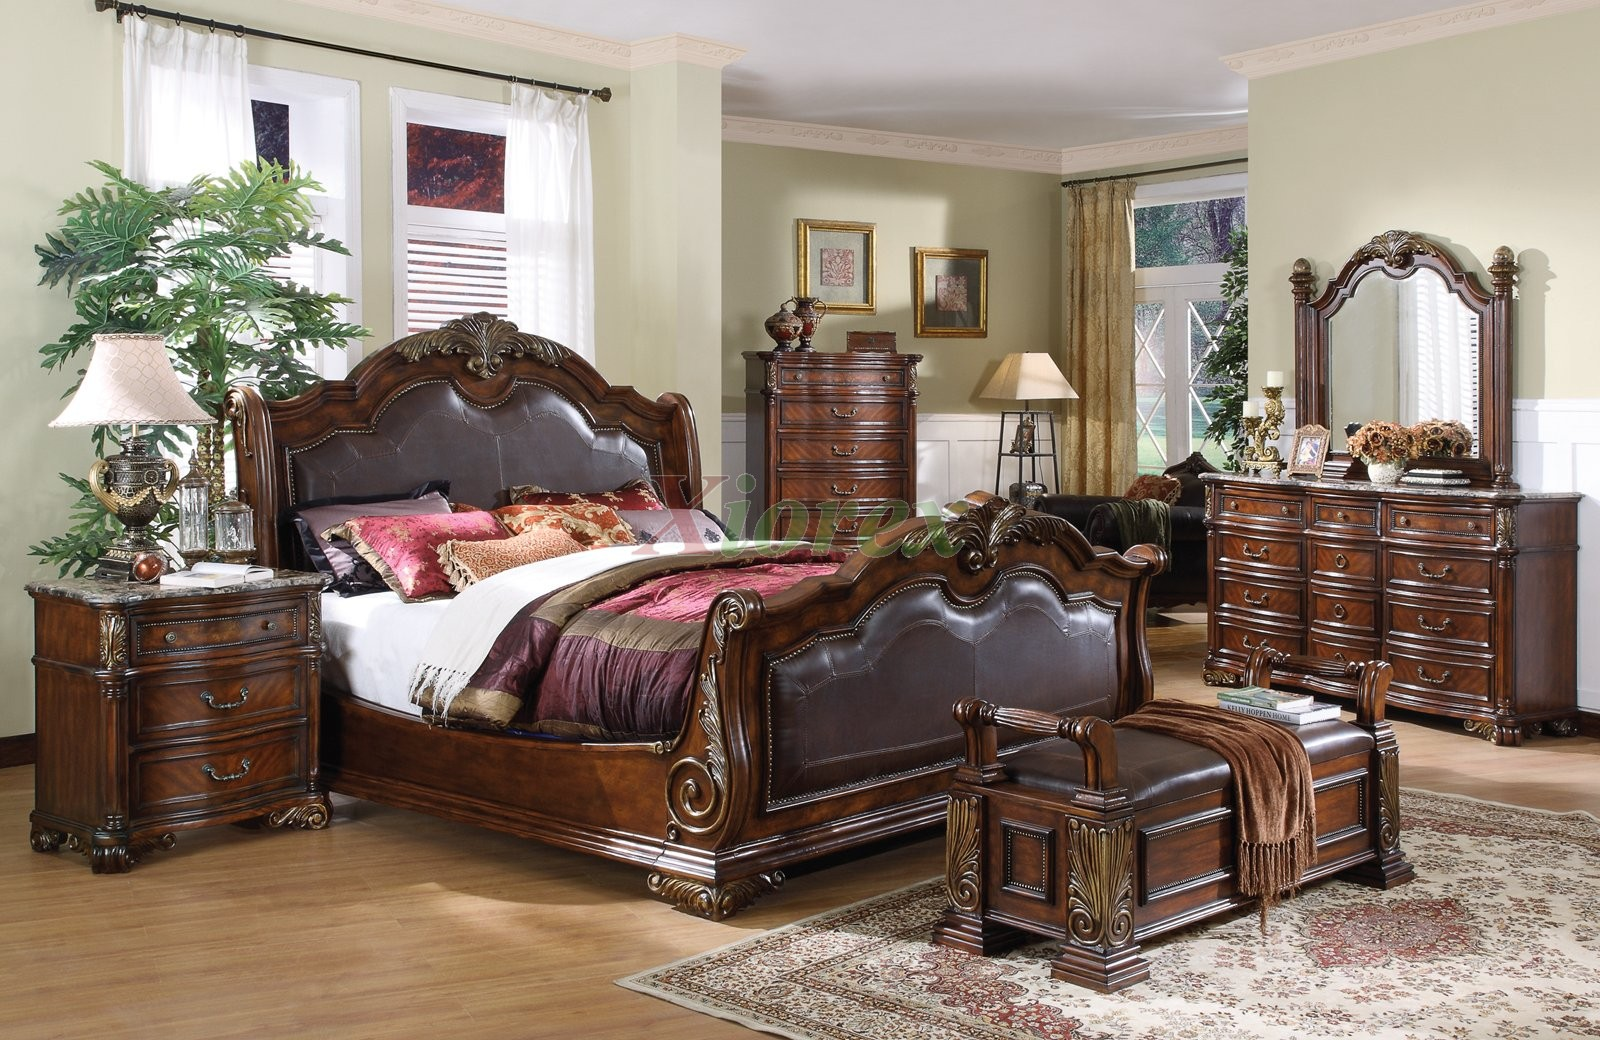 Sleigh Bedroom Set With Leather Headboard And Leather Footboard Beds |  Xiorex.